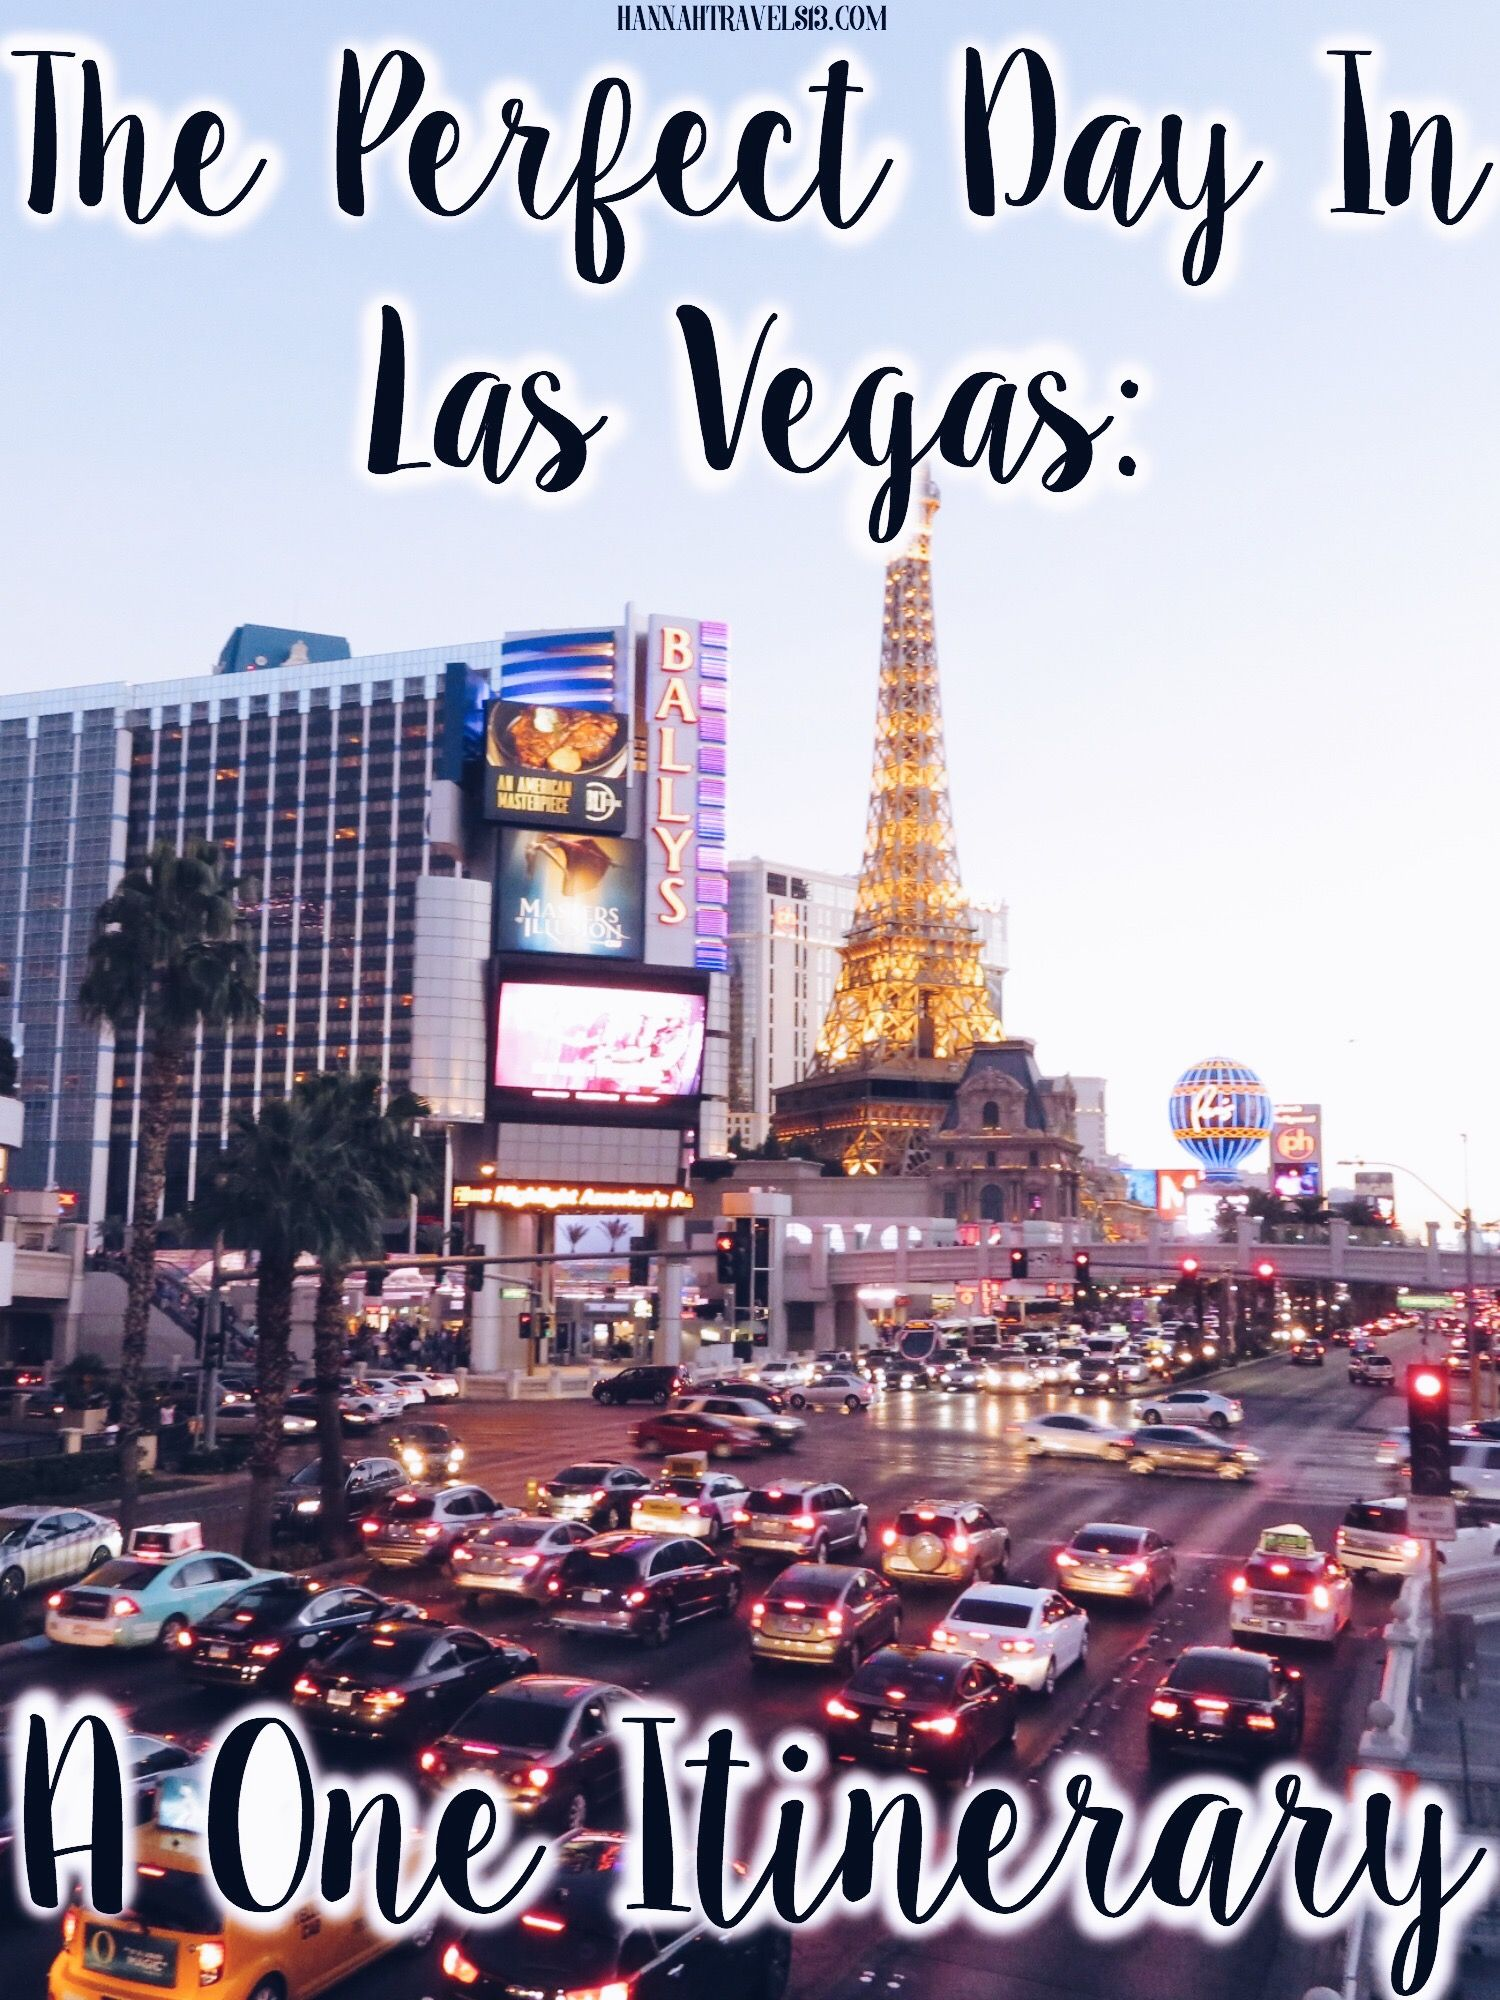 The Perfect Day In Las Vegas A One Day Itinerary Hannah Travels Las Vegas Vacation Las Vegas Trip Las Vegas Hotels